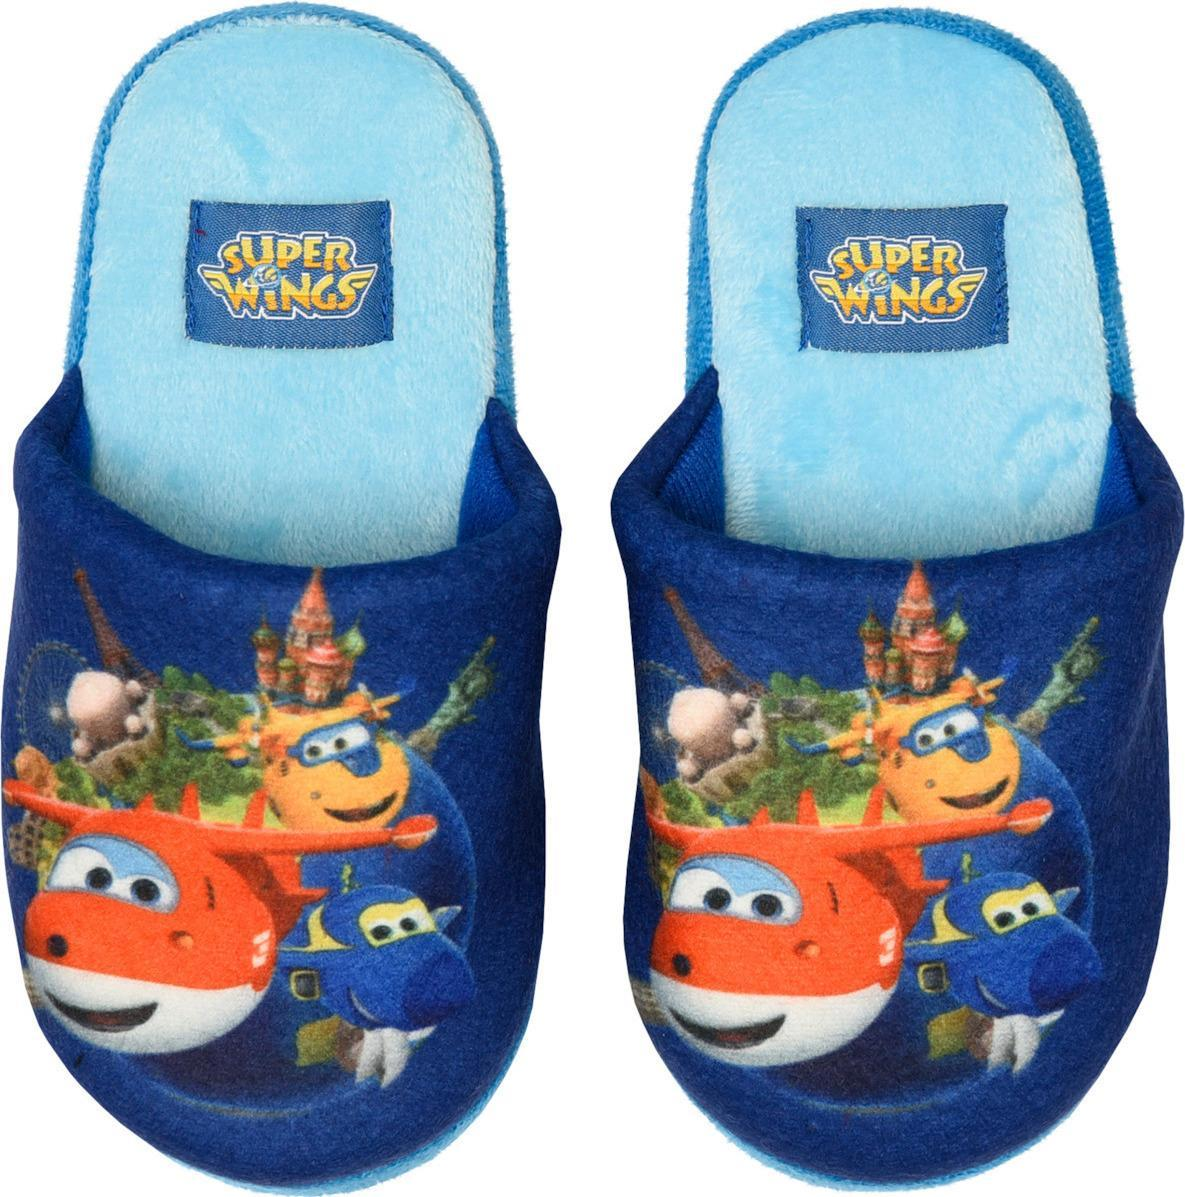 Super Wings Blue Slippers (No 25-30)